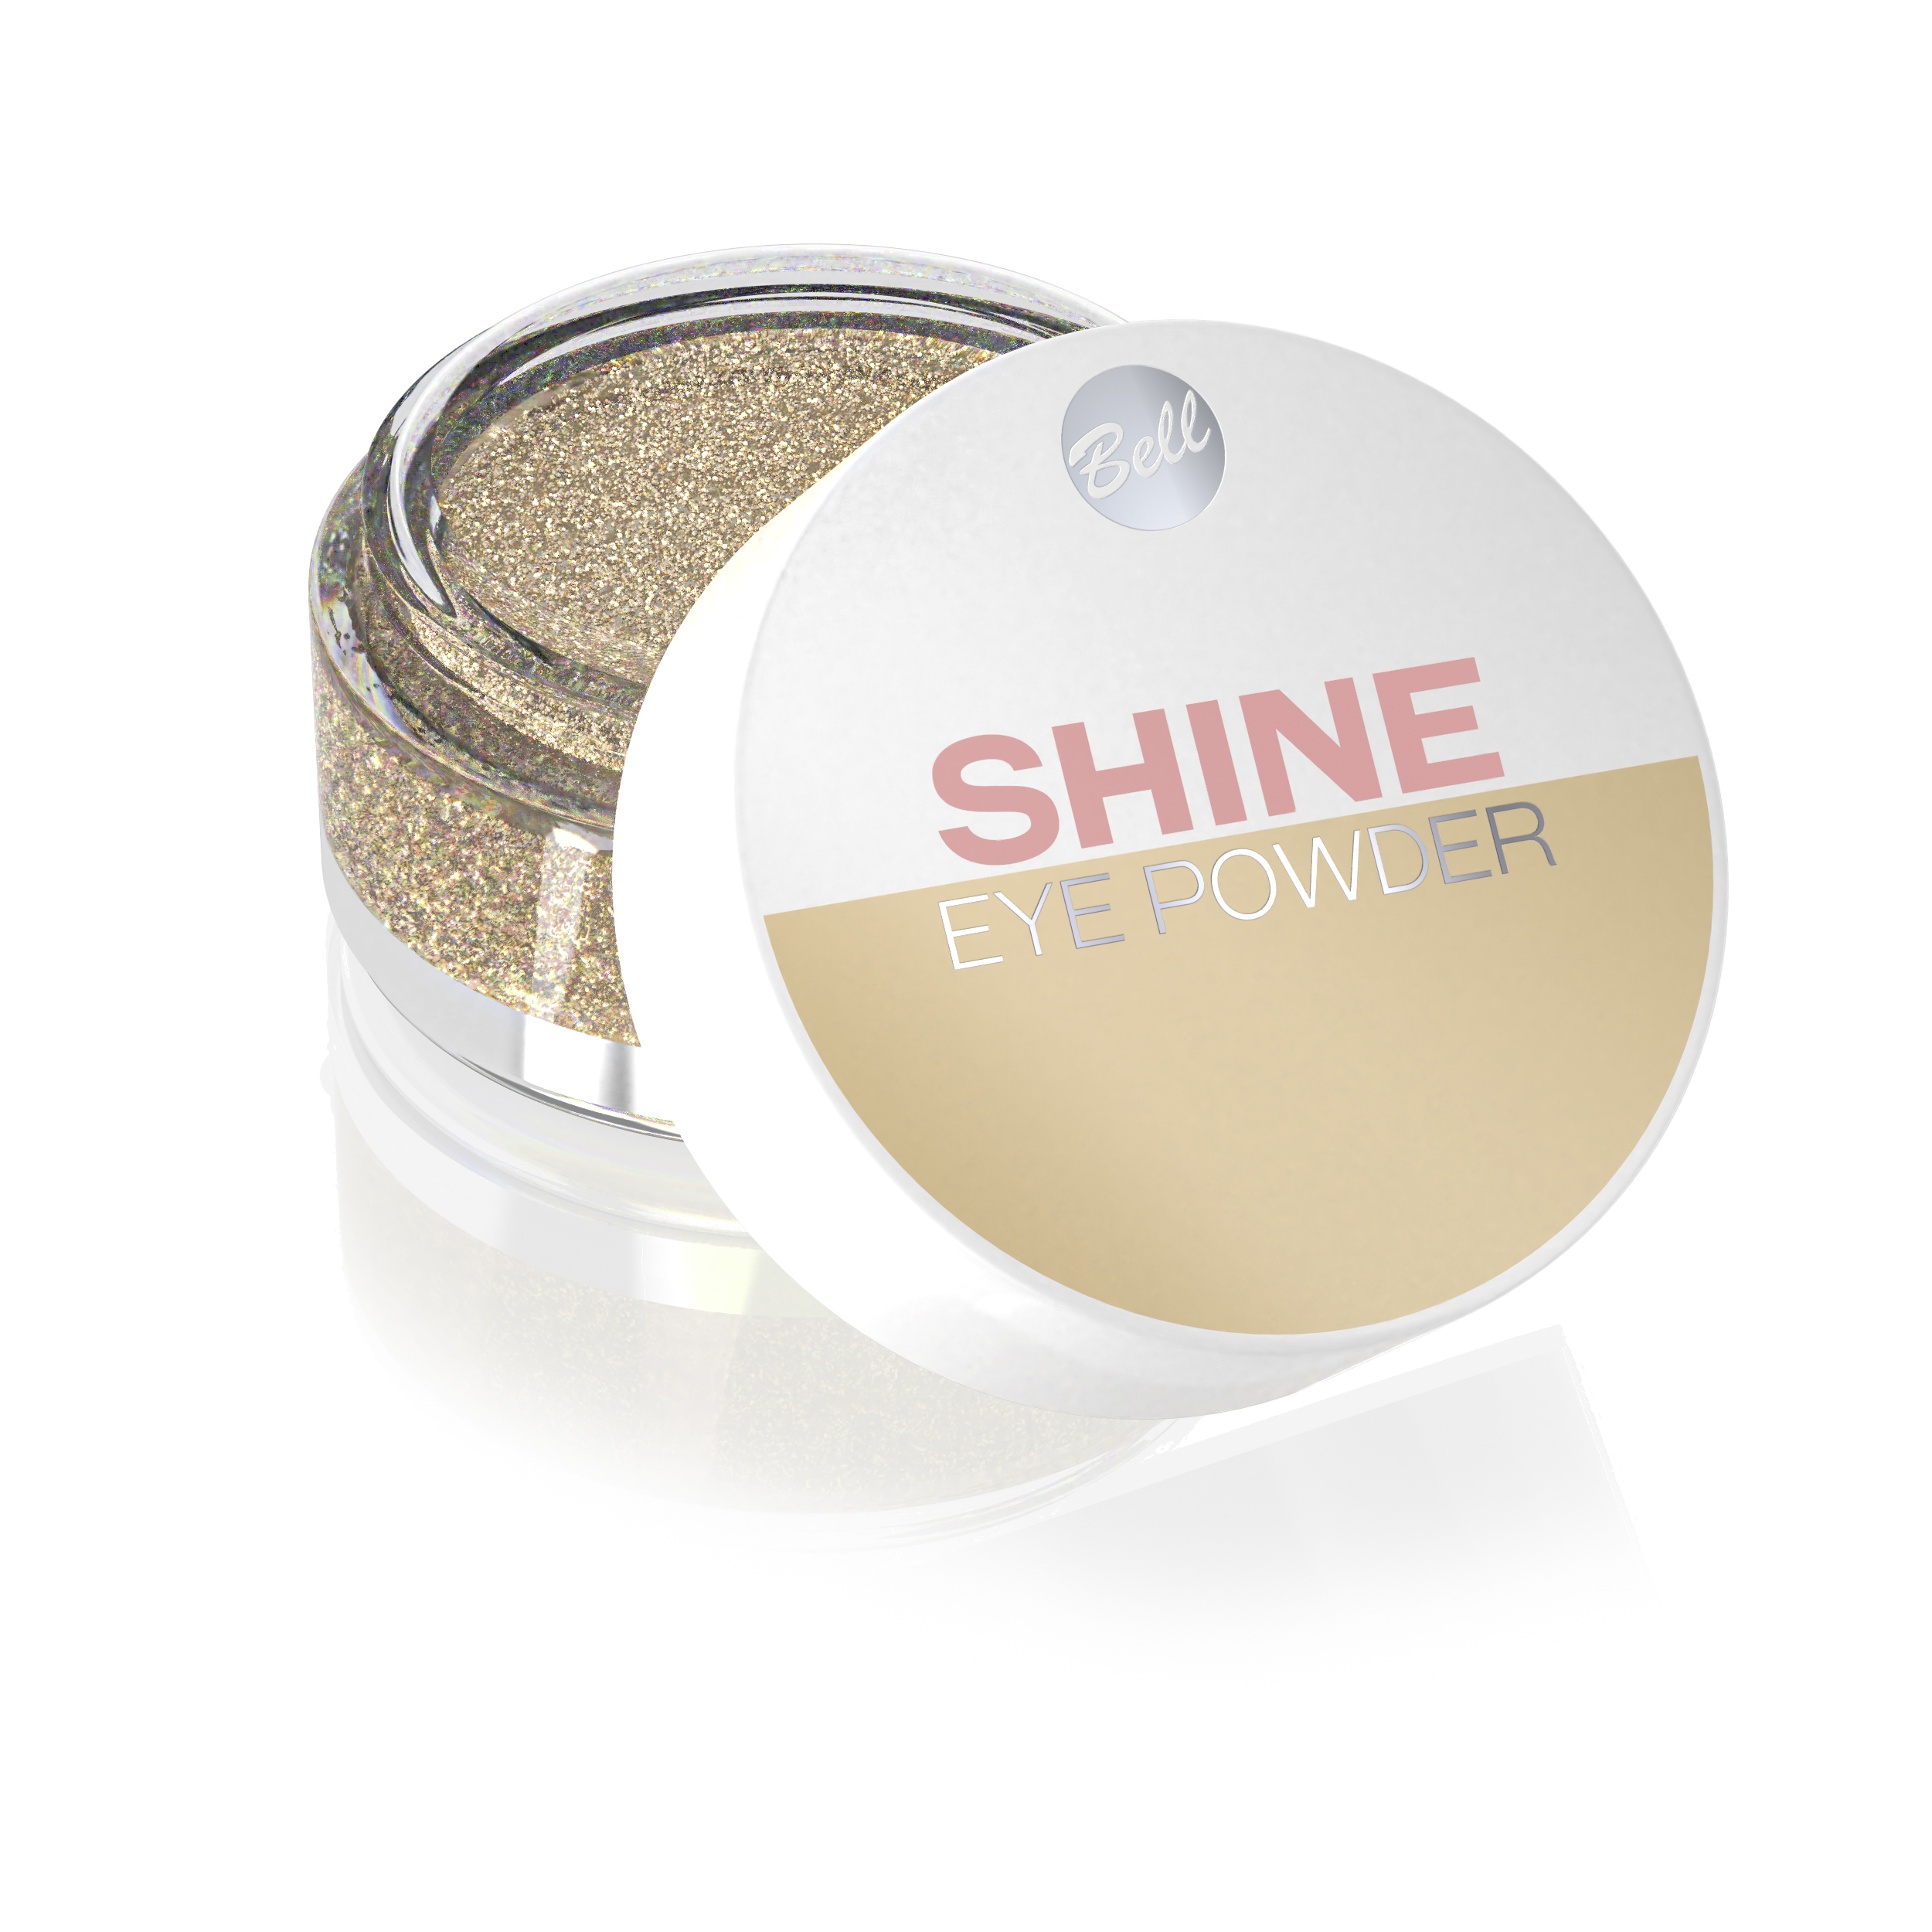 Shine Eye Powder